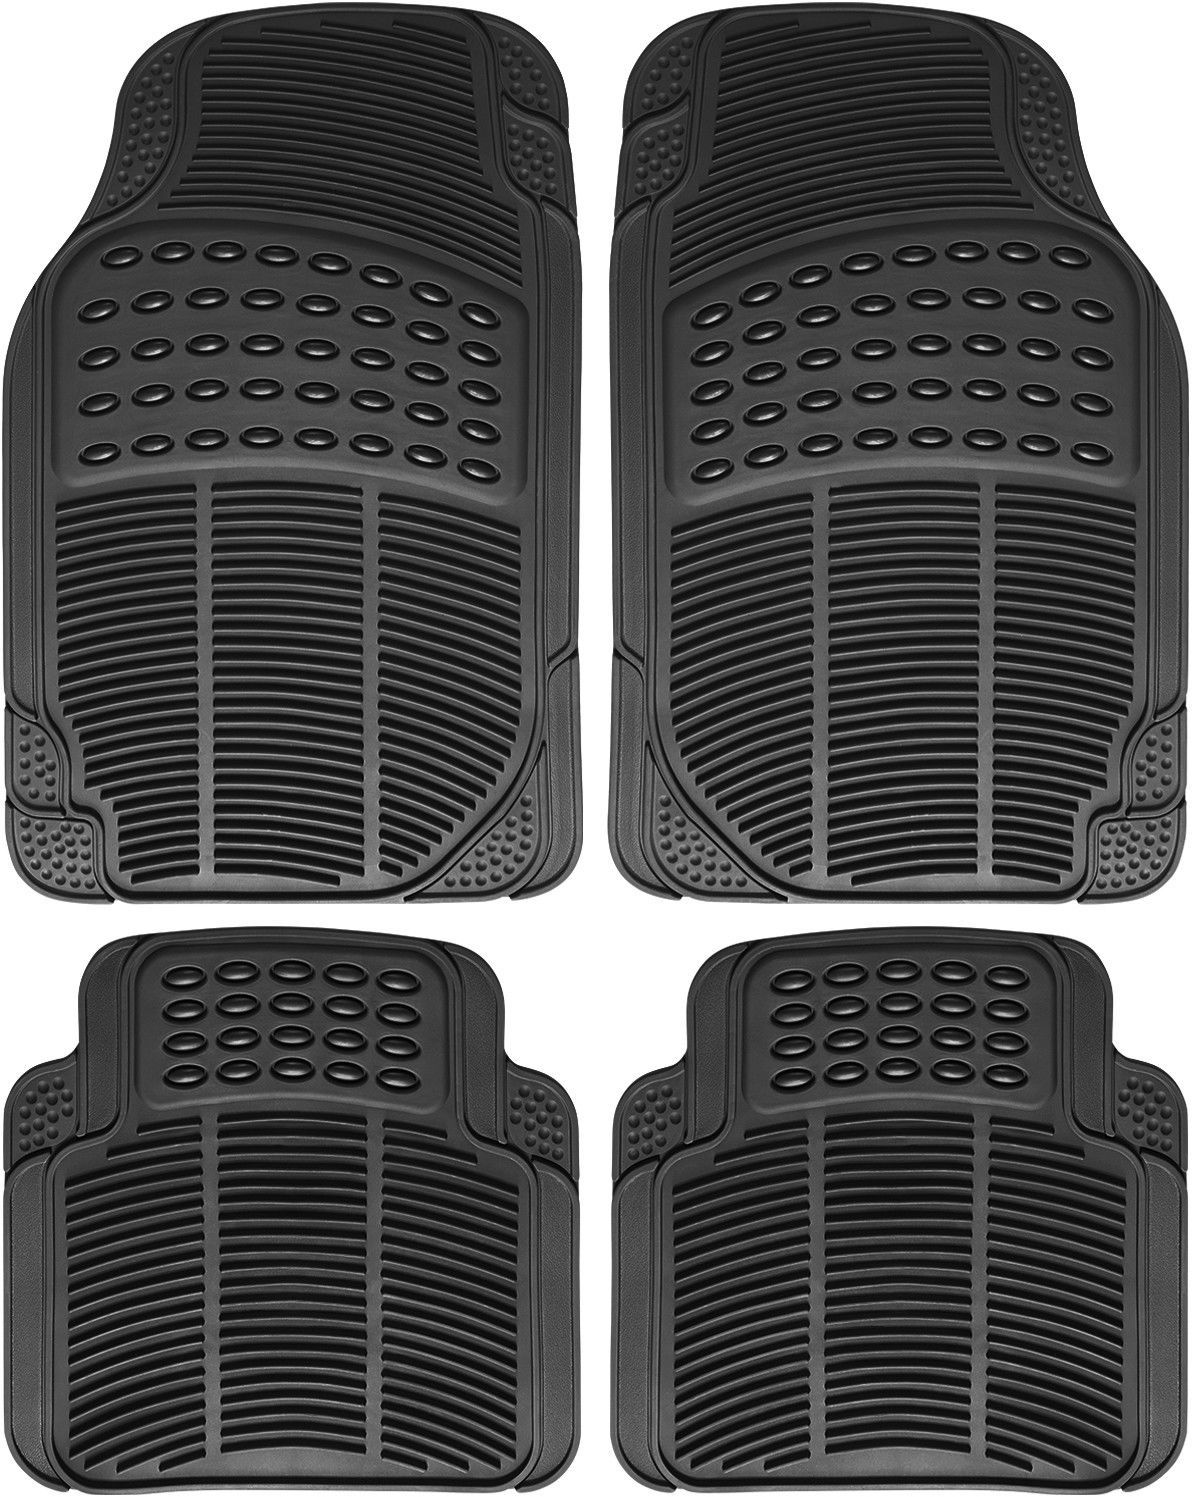 covers review id car mats caddy seat volkswagen direct van list floor tailored vw product